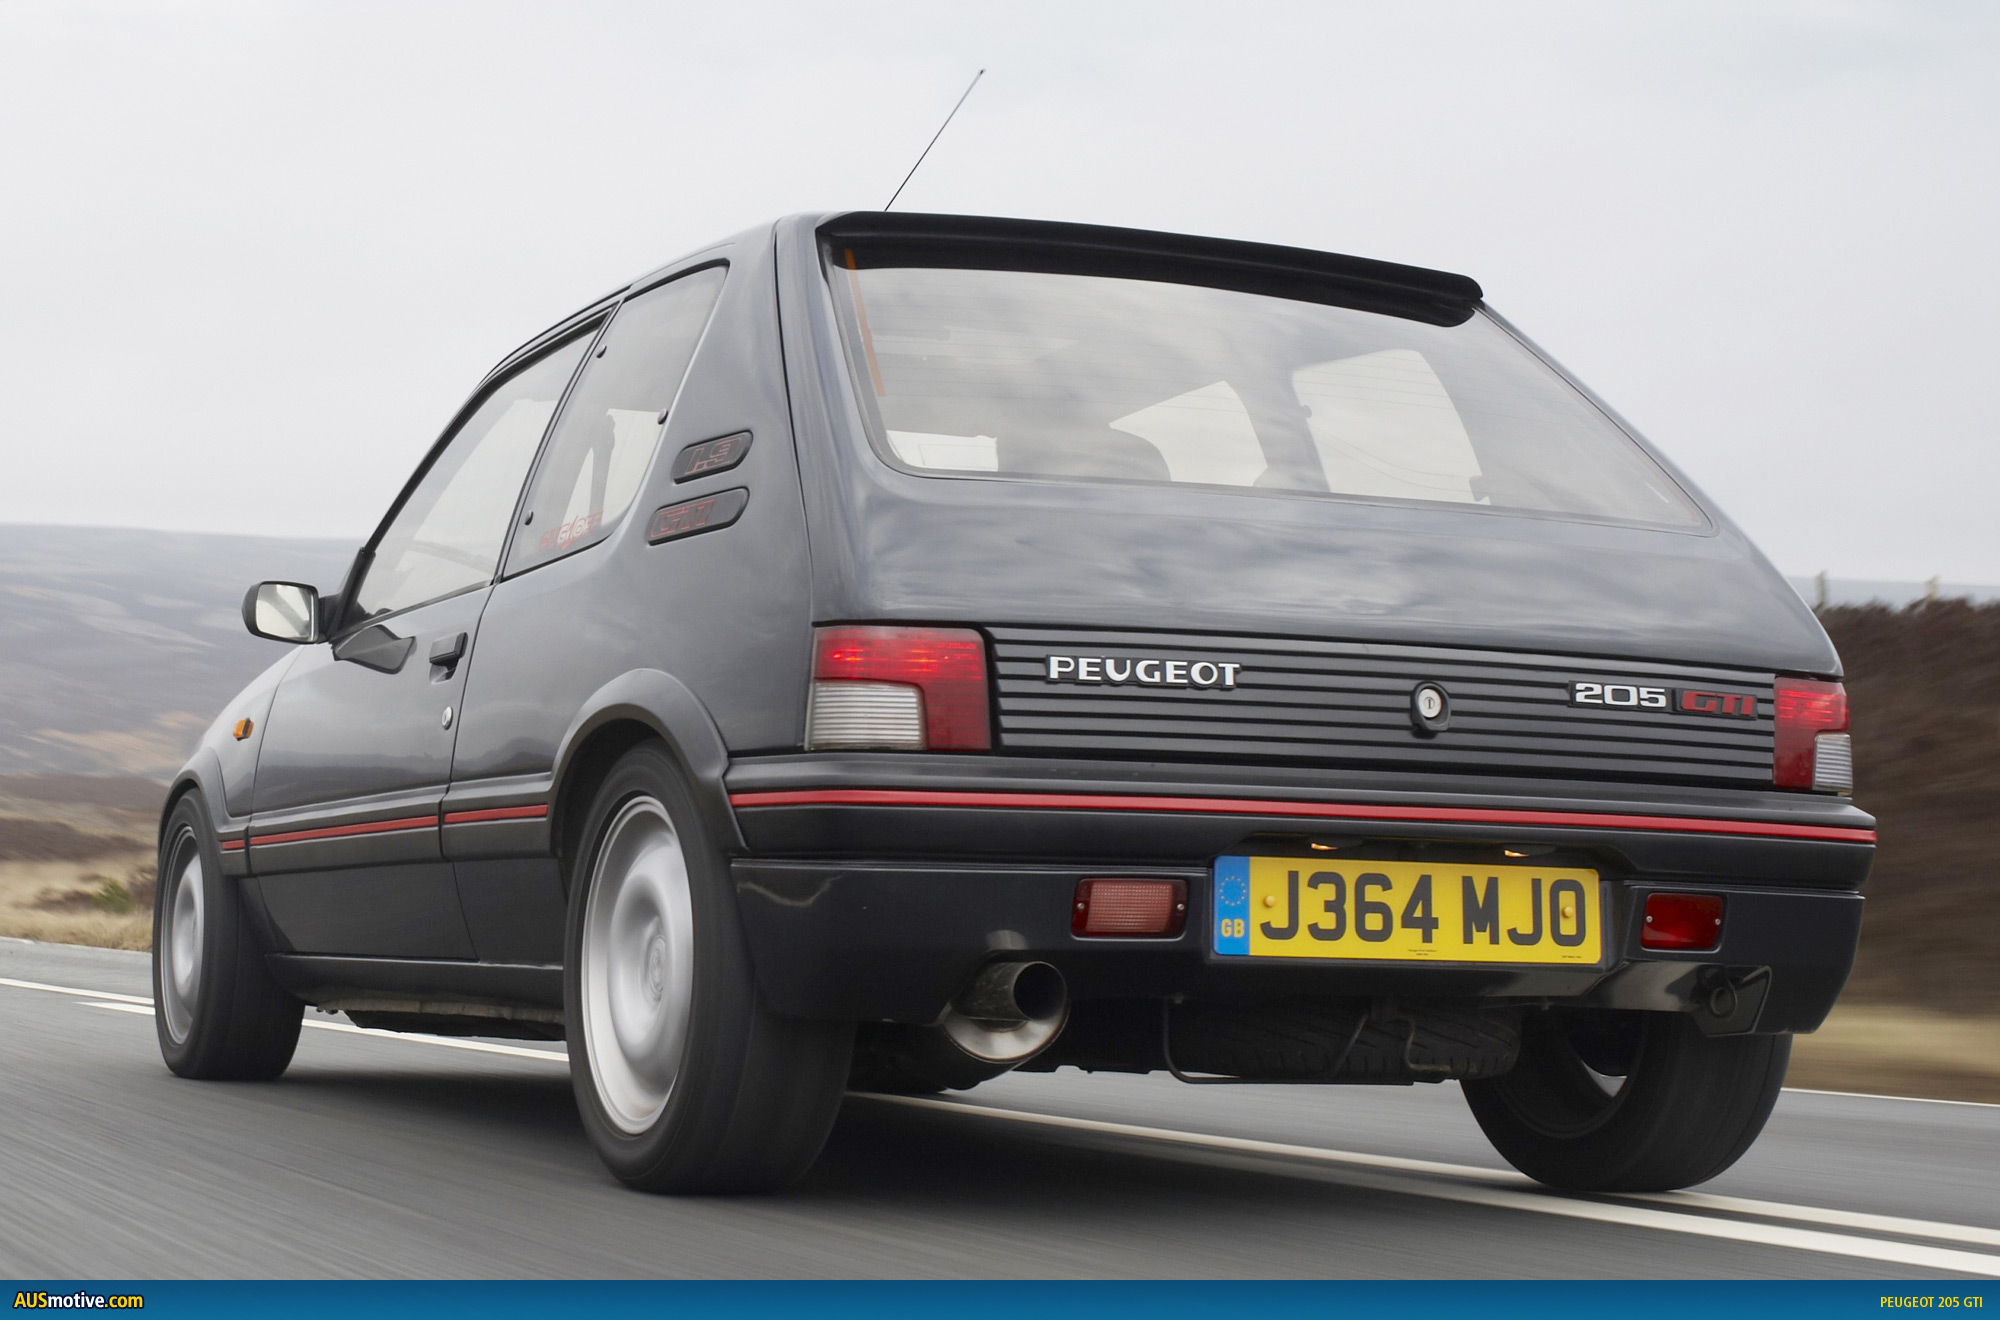 ausmotive » breathing new life into a french hot hatch icon